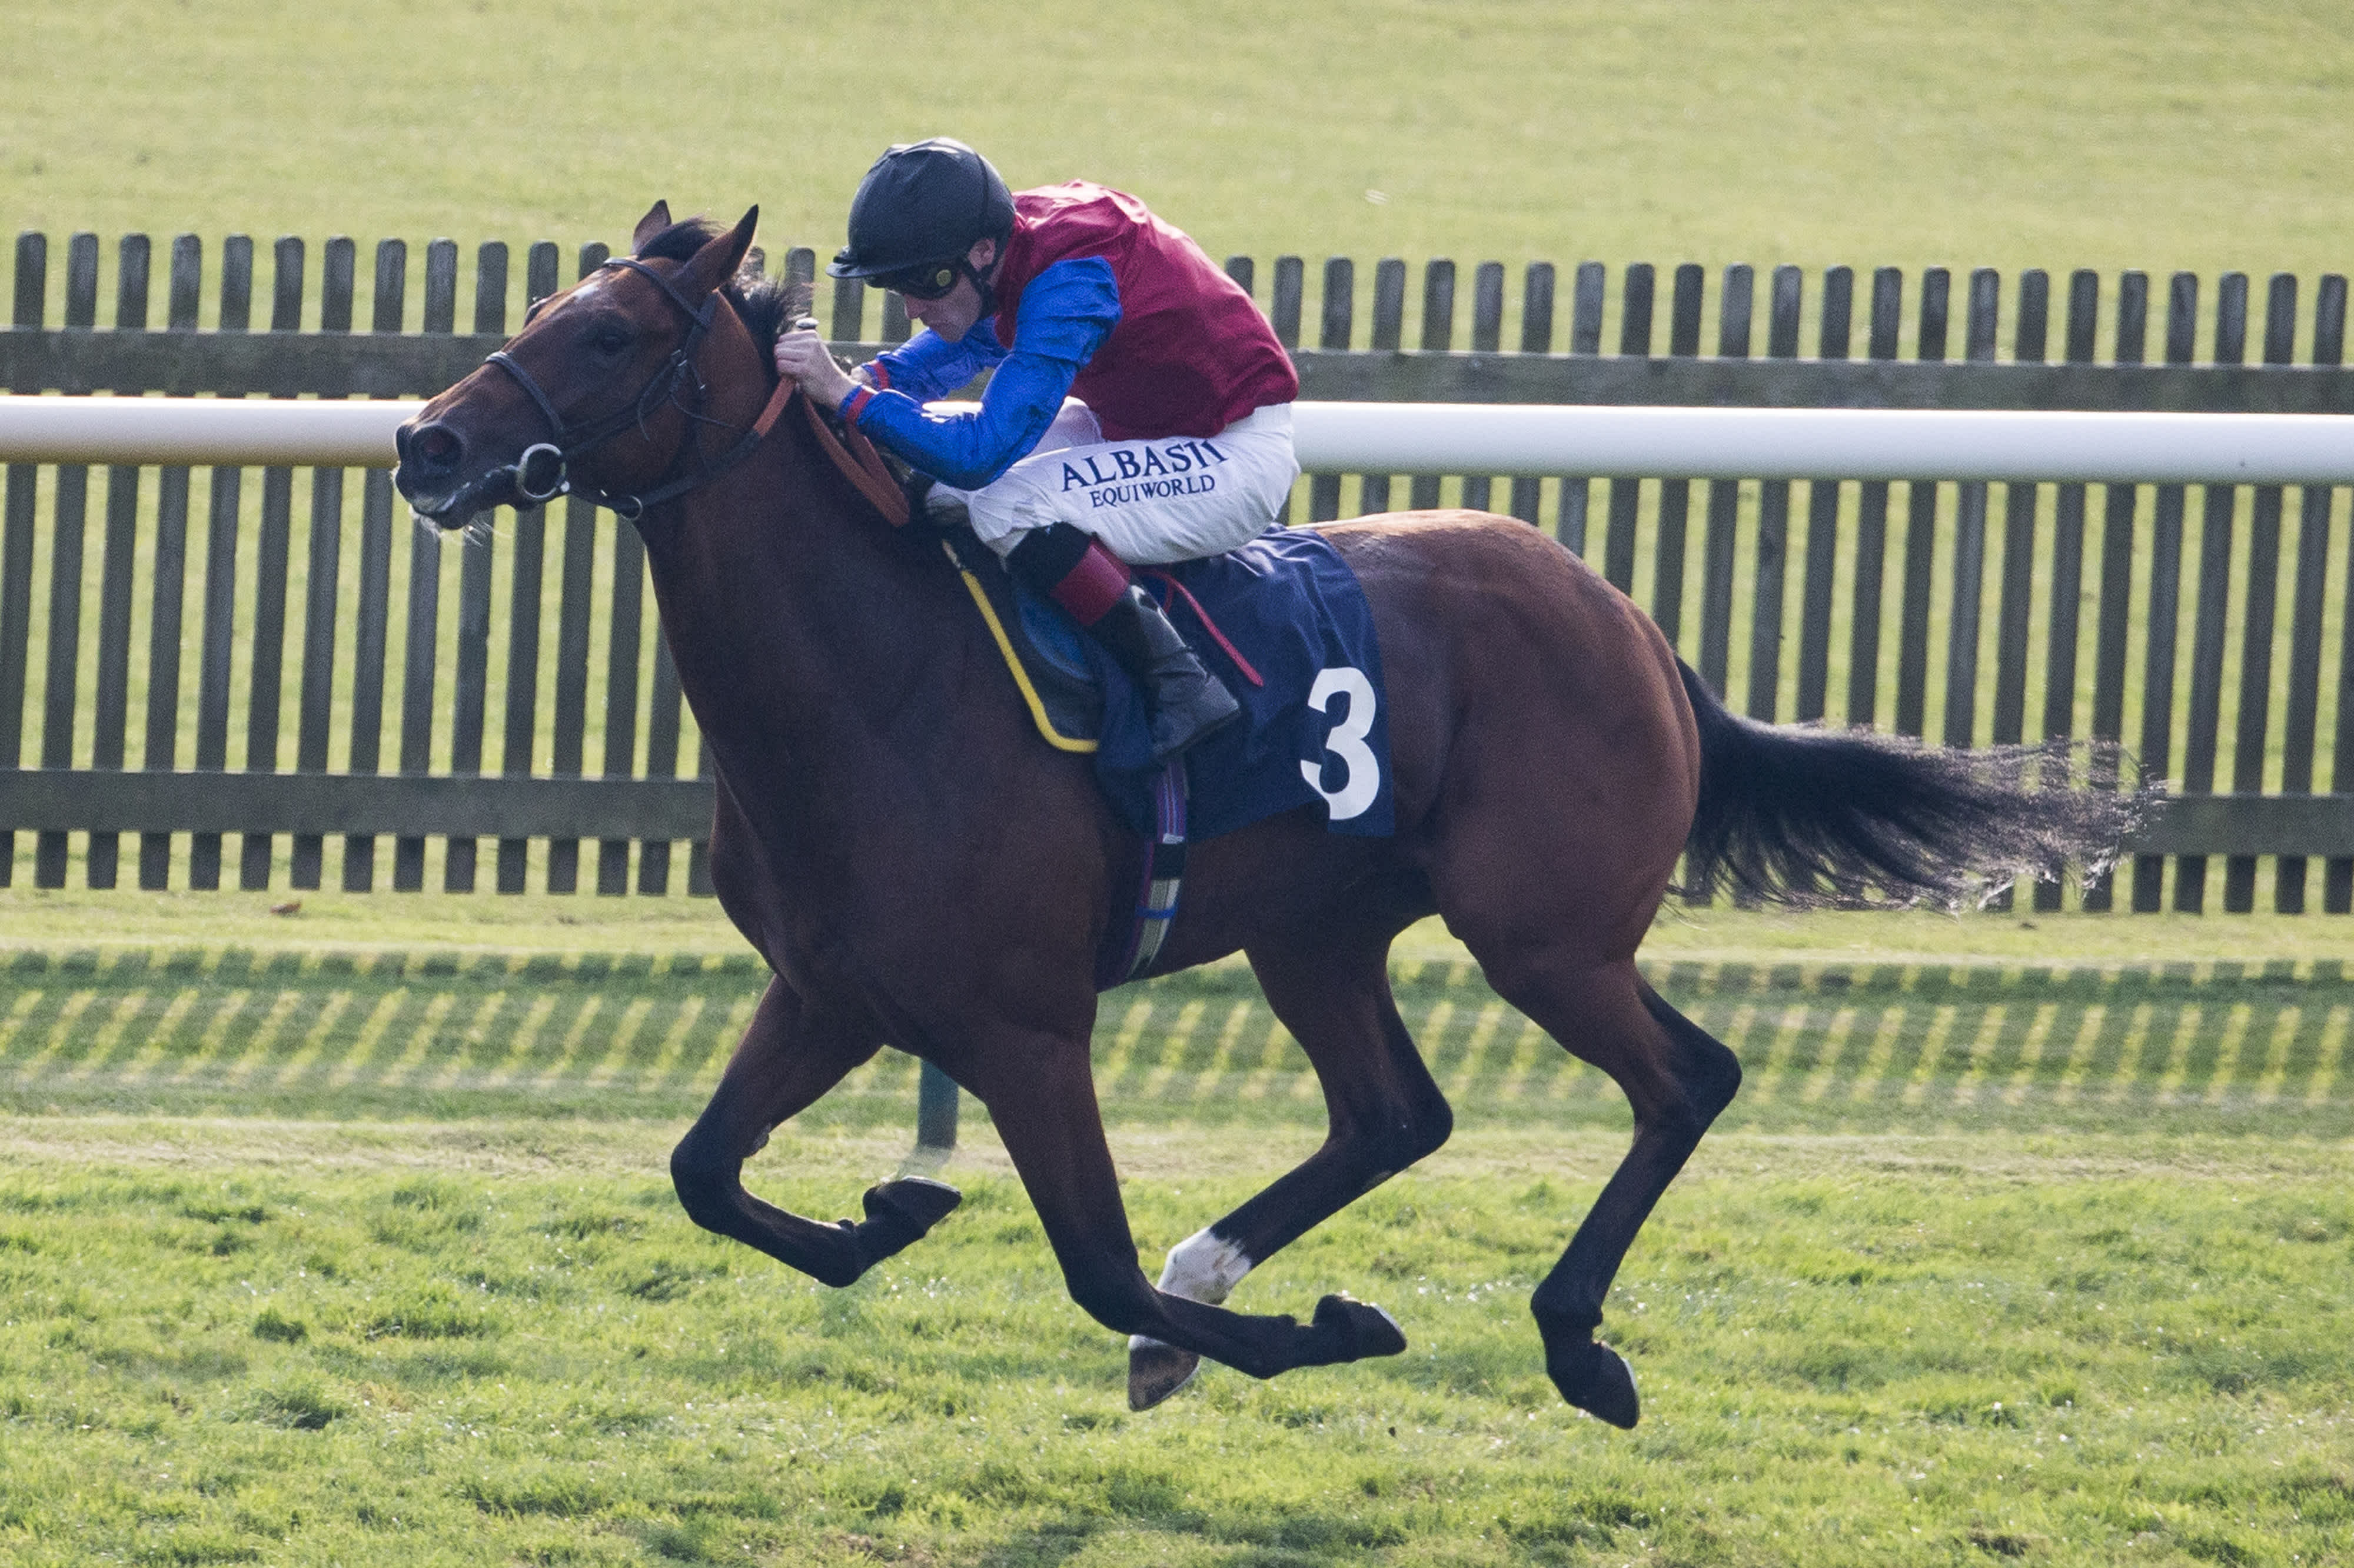 Dovecote preview: Carntop puts Cheltenham Festival claims on the